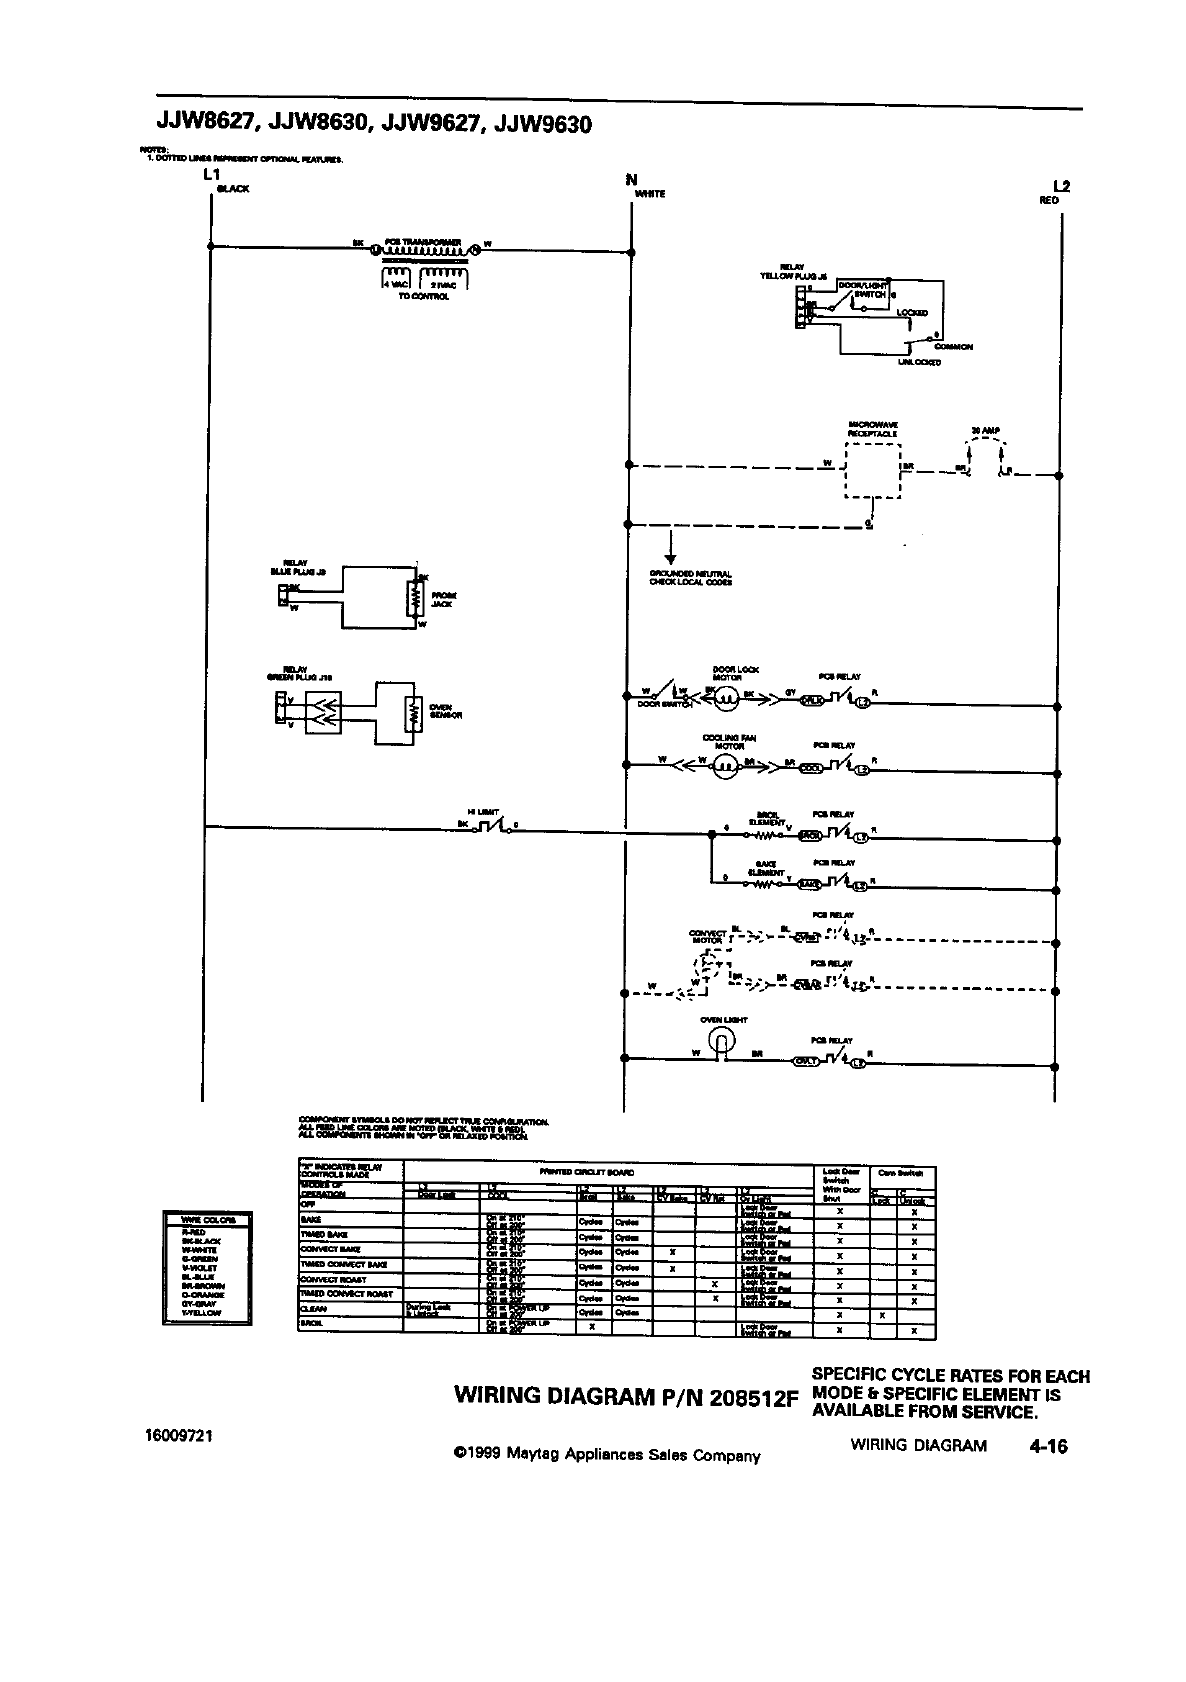 52b2f415 78fa 4259 88c0 be210120d02a bg30 page 48 of jenn air oven w30100 user guide manualsonline com Basic Electrical Wiring Diagrams at reclaimingppi.co